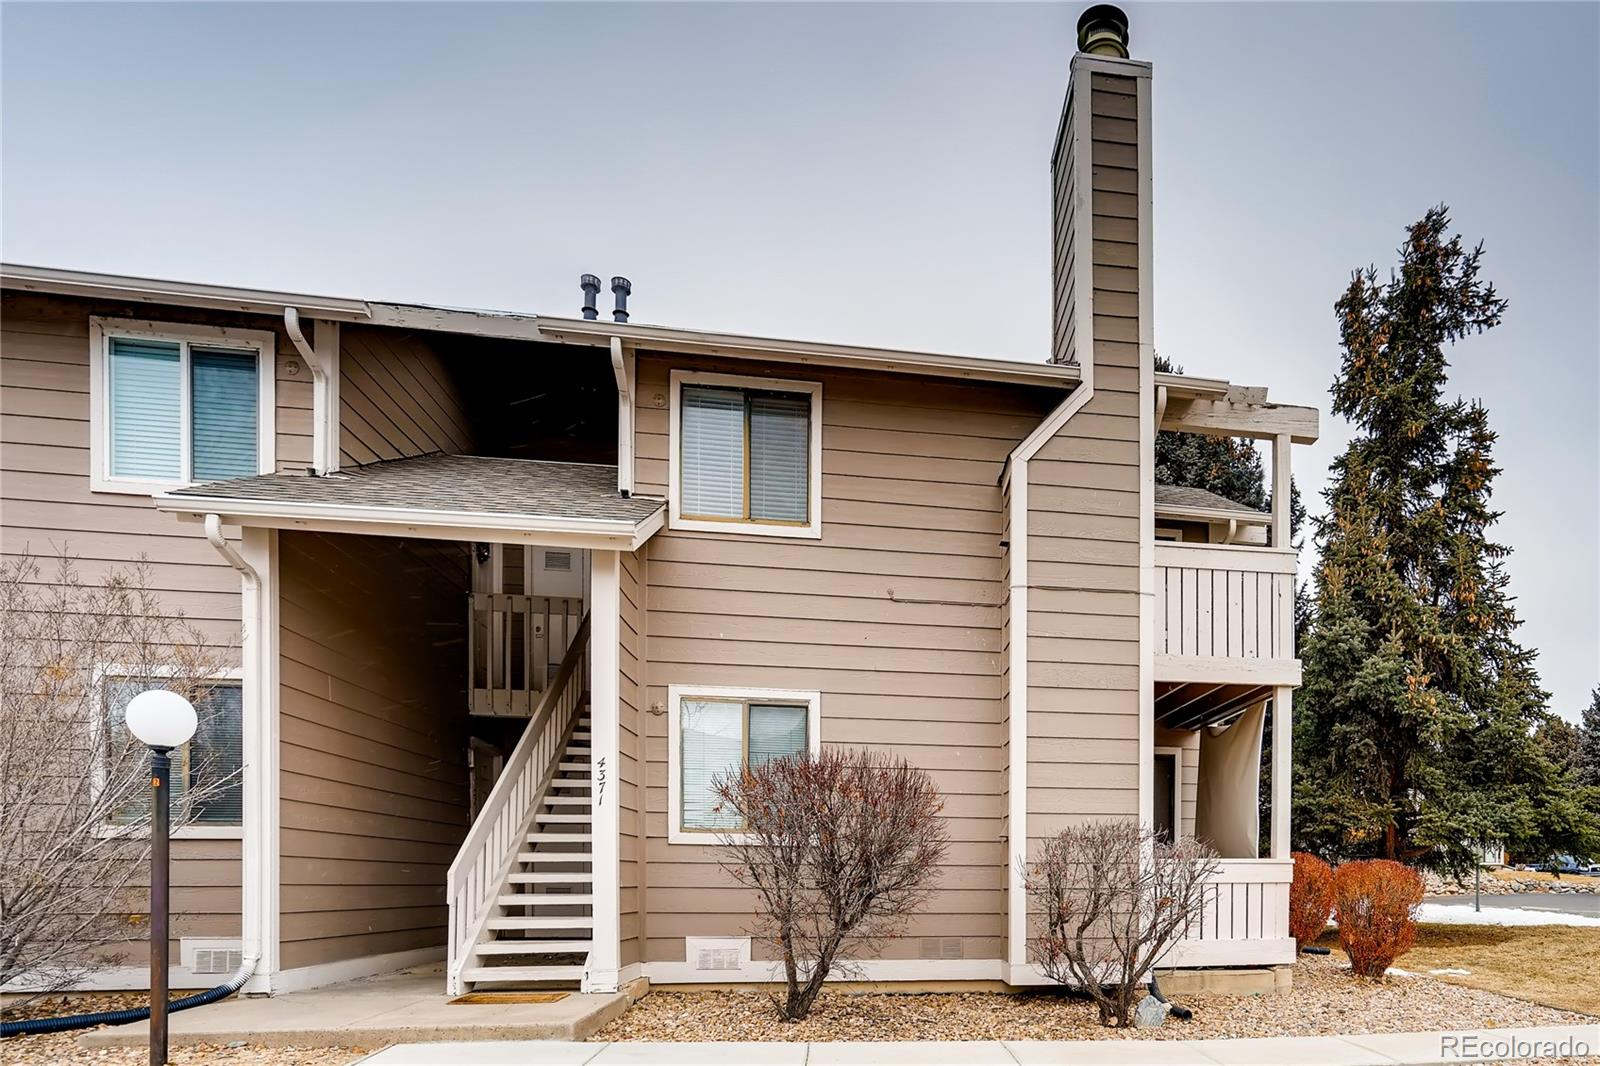 MLS# 6714692 - 1 - 4371 S Andes Way #201, Aurora, CO 80015